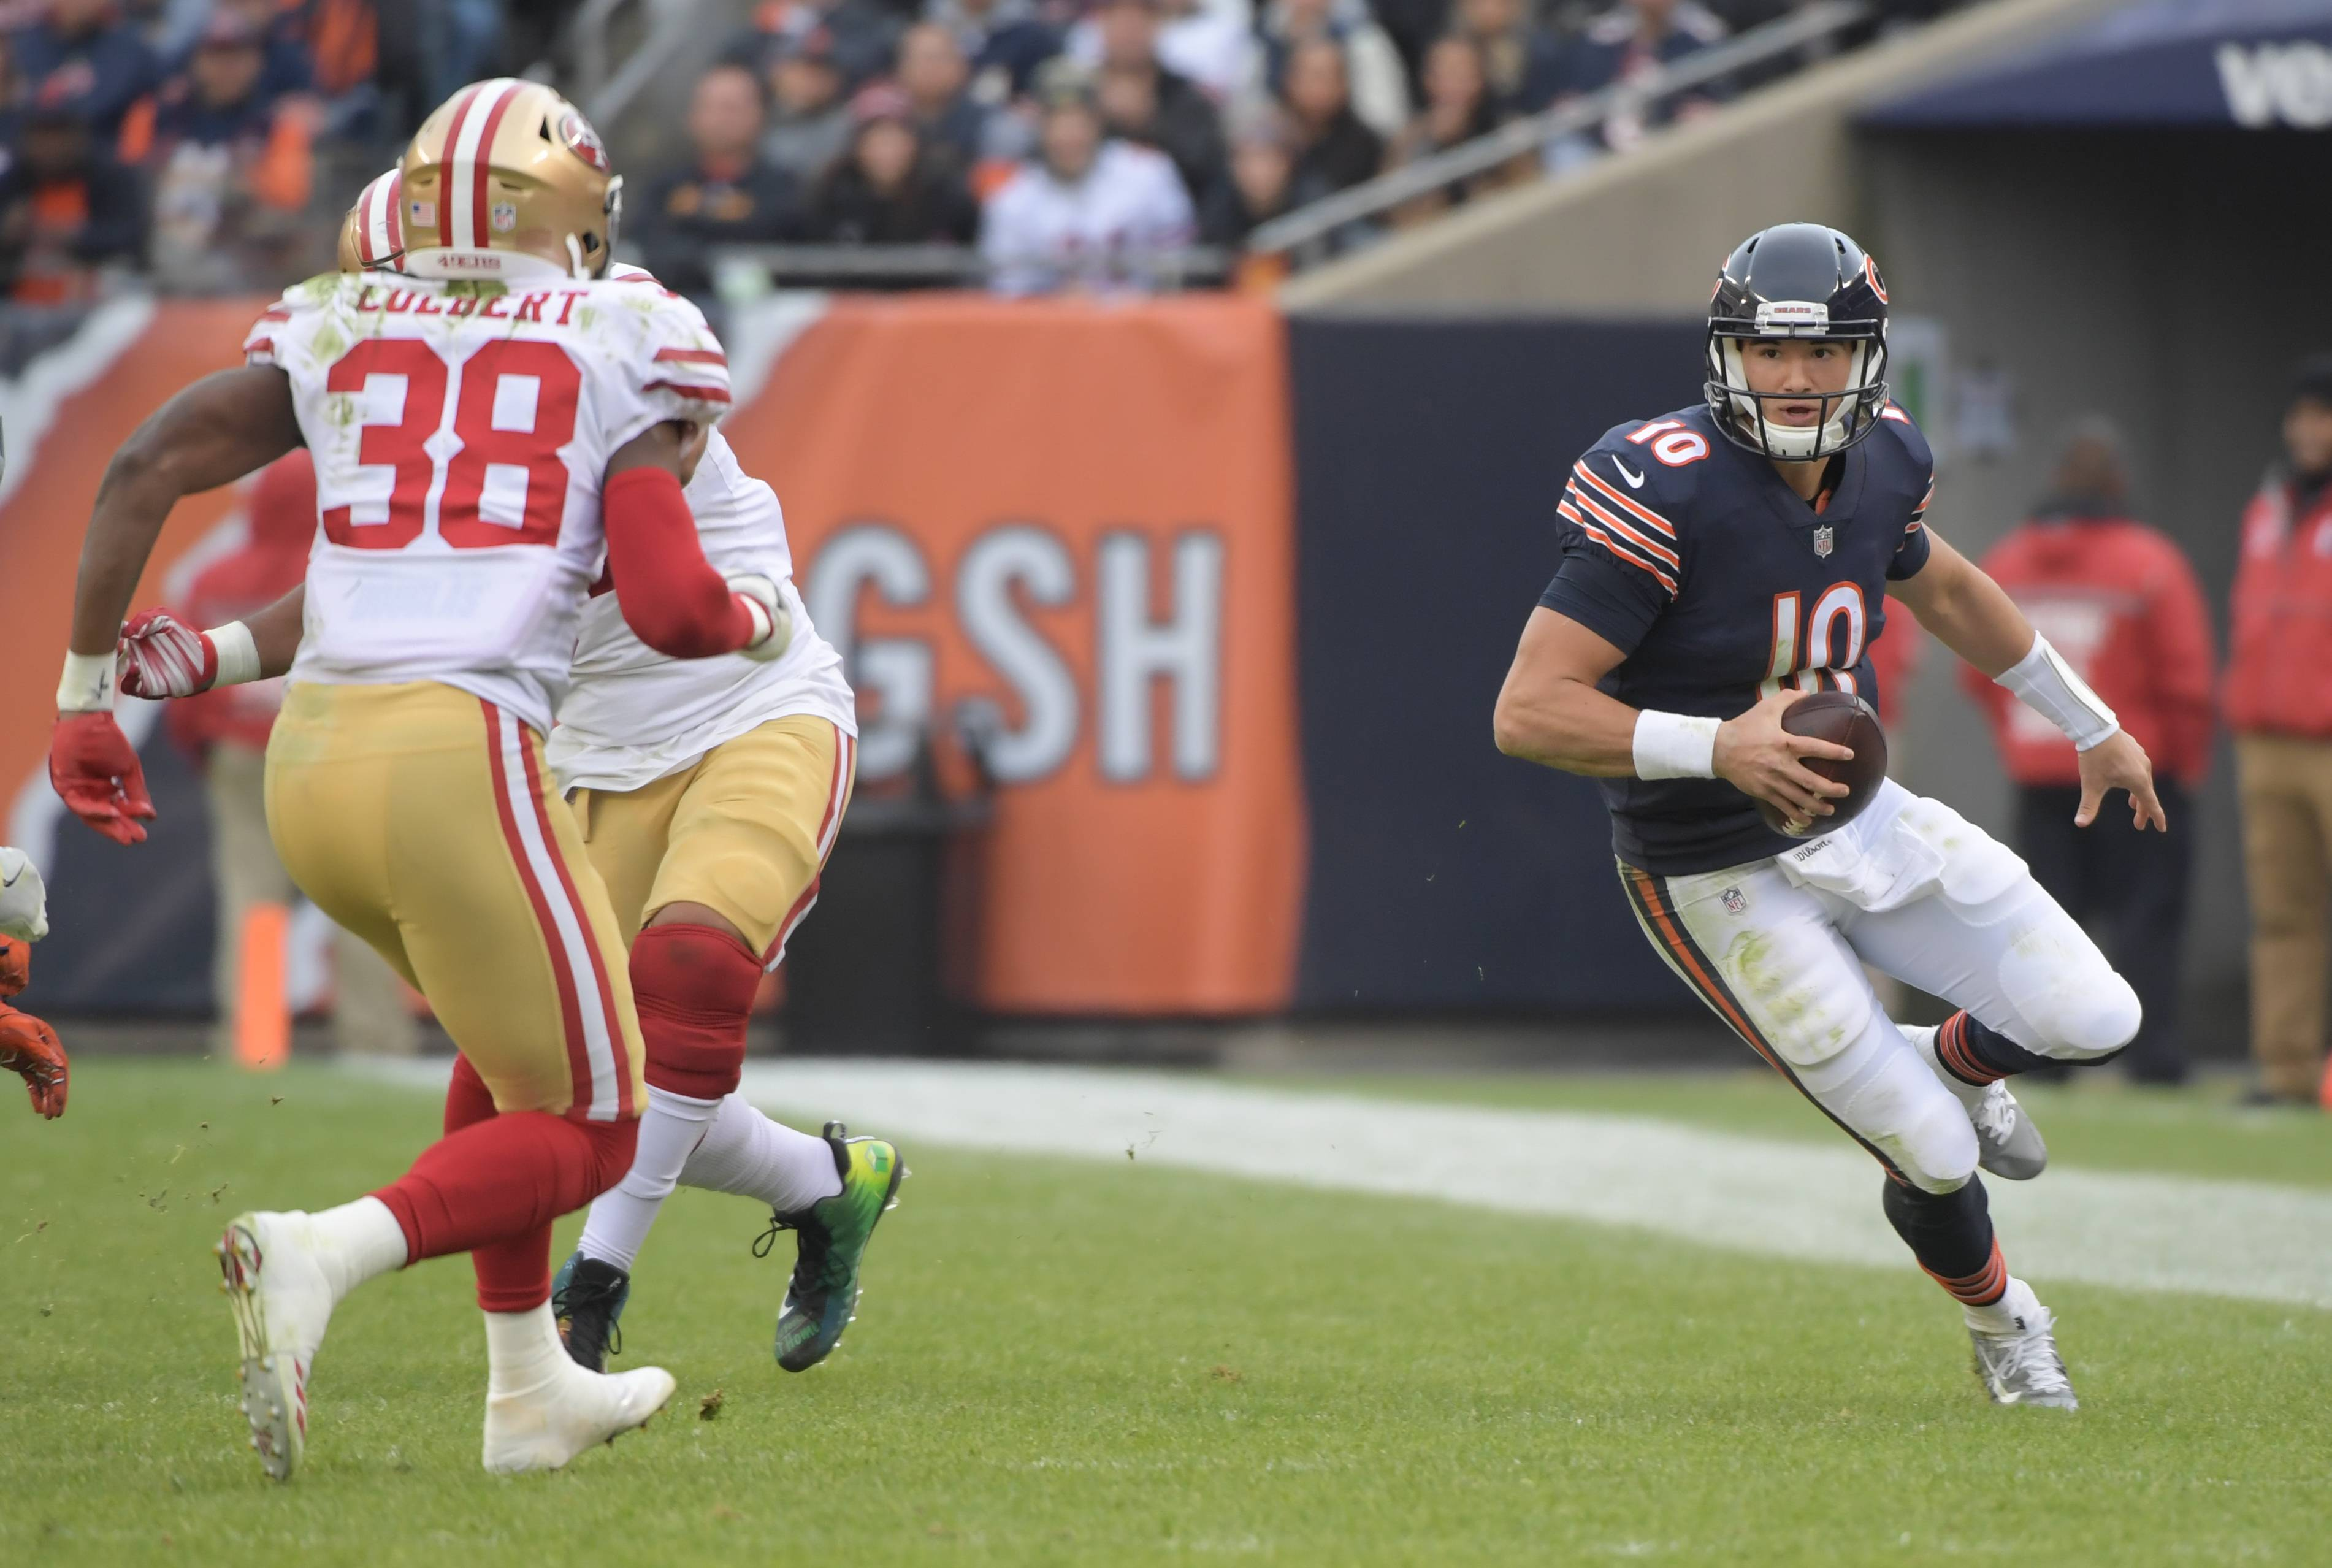 Chicago Bears' quarterback Mitchell Trubisky (10) scrambles with the ball toward the sideline during the Bears 14-15 loss to the San Francisco 49ers at Soldier Field on December 3, 2017.